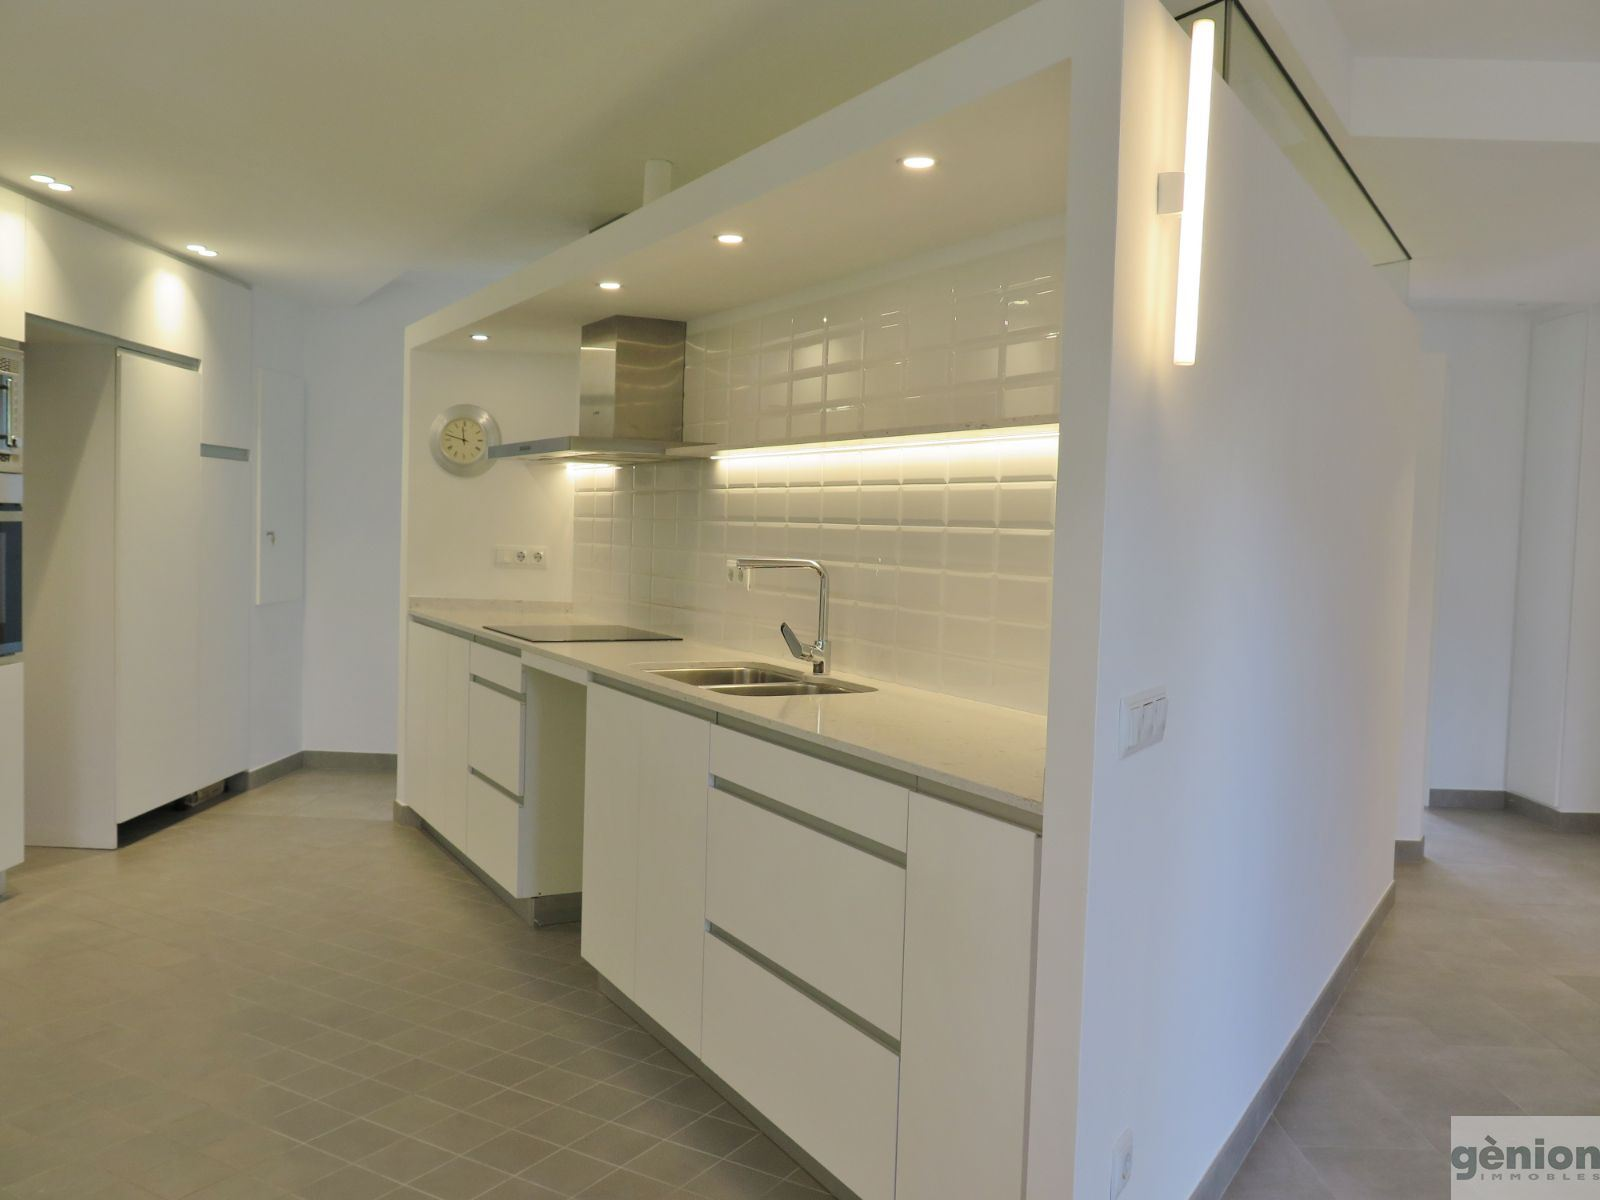 APARTMENT WITH 3 DOUBLE BEDROOMS IN MONTILIVI/PERICOT, GIRONA. FULLY REFURBISHED